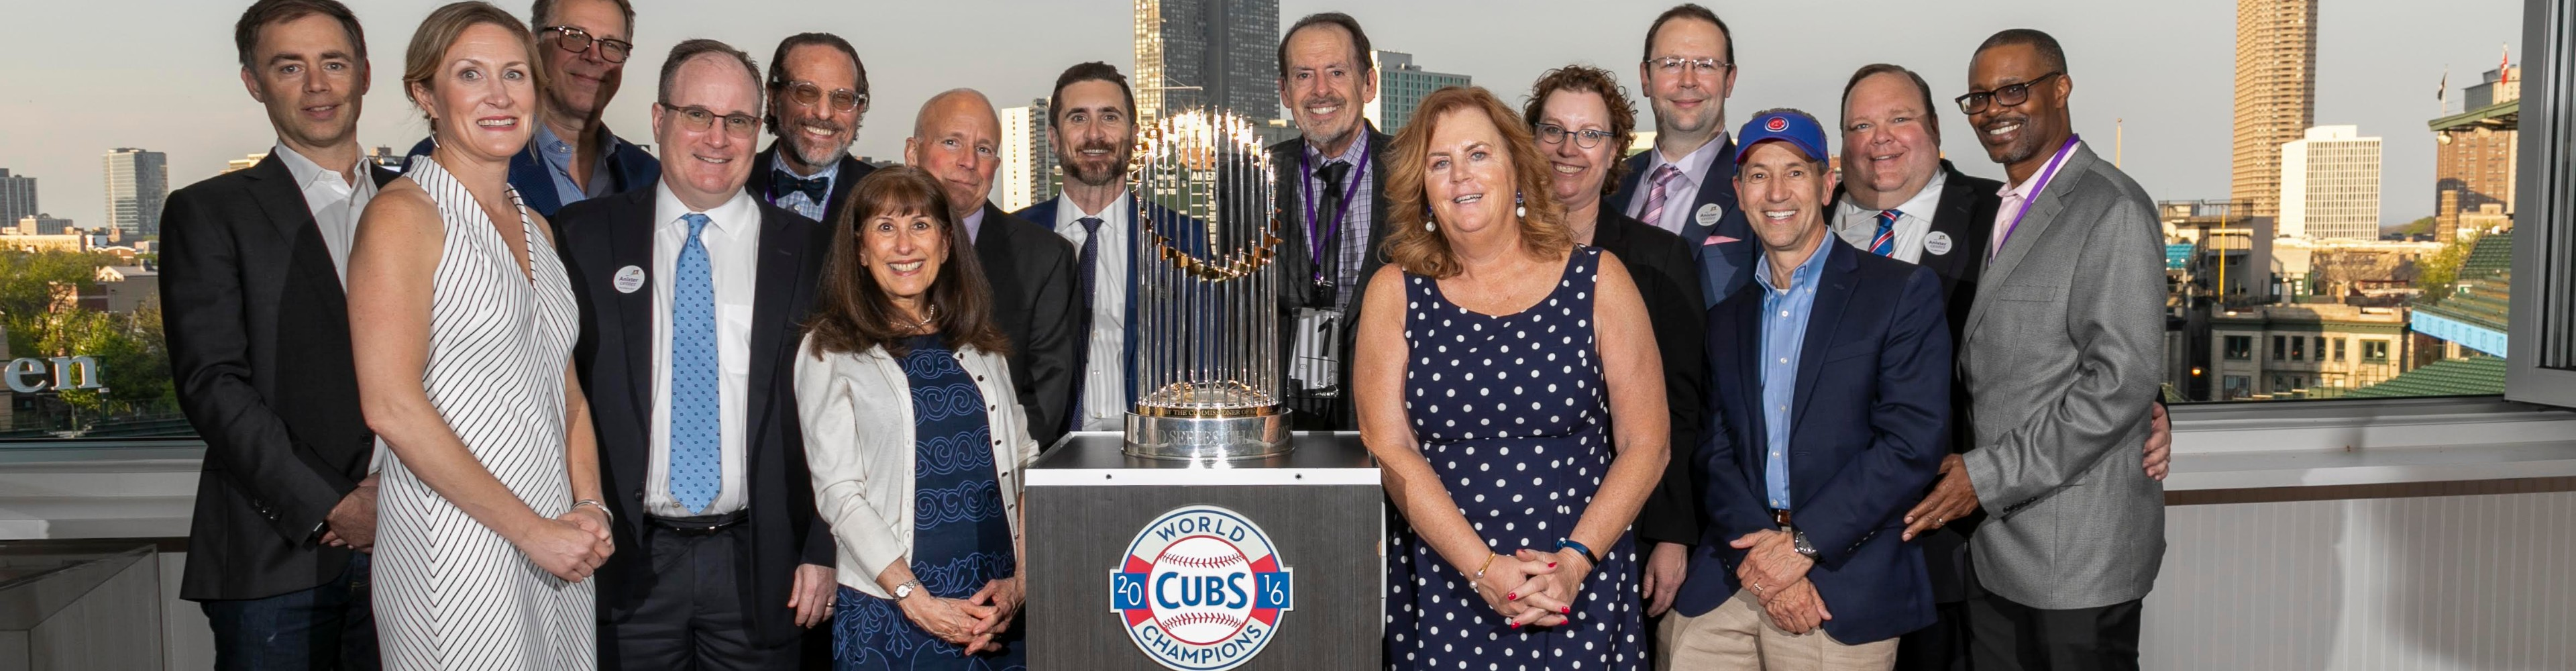 Anixter Board of Directors posing with the World Series Trophy